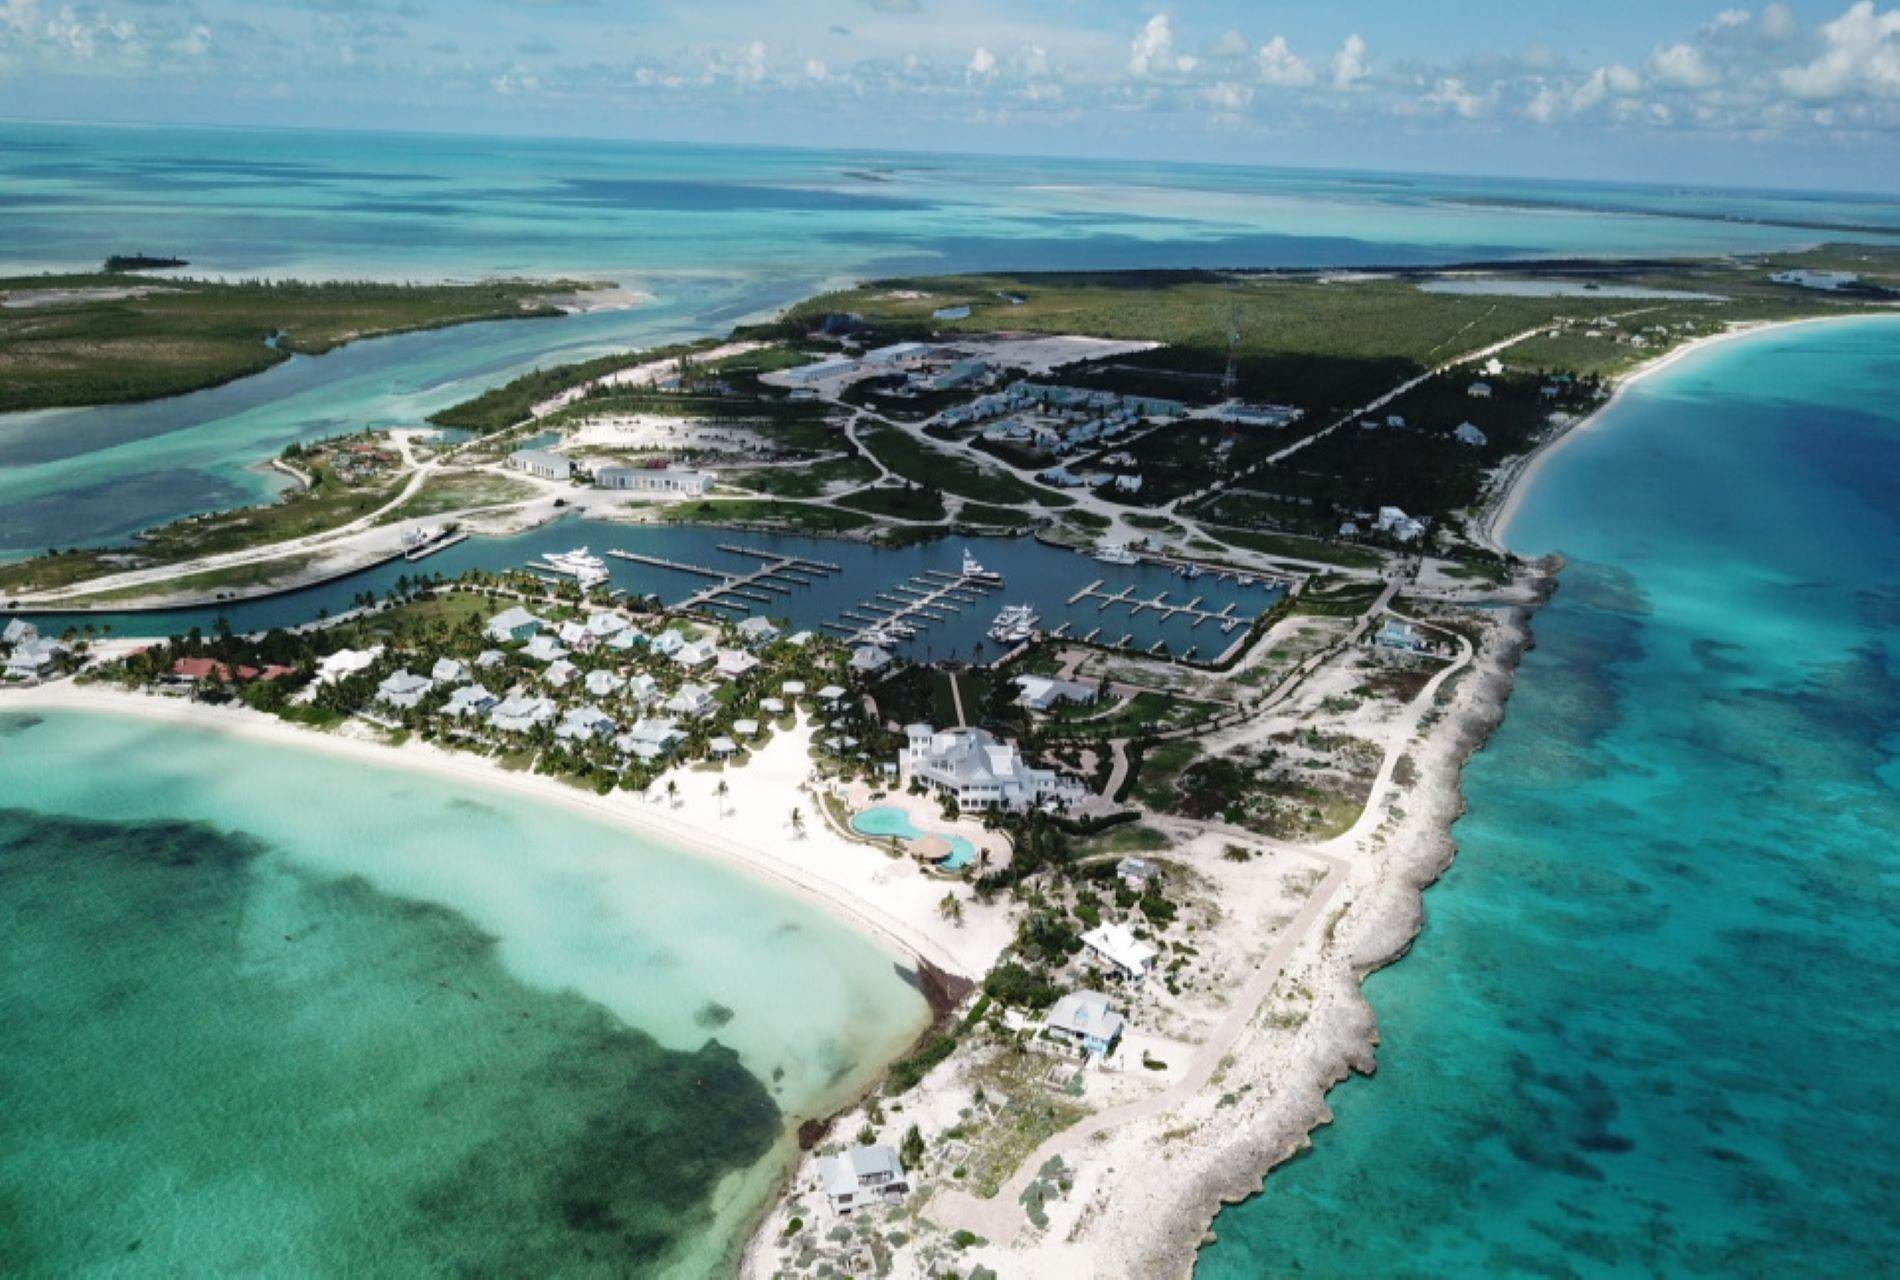 17. Land for Sale at Lot 29 Chub Cay - MLS 38796 Chub Cay, Berry Islands, Bahamas